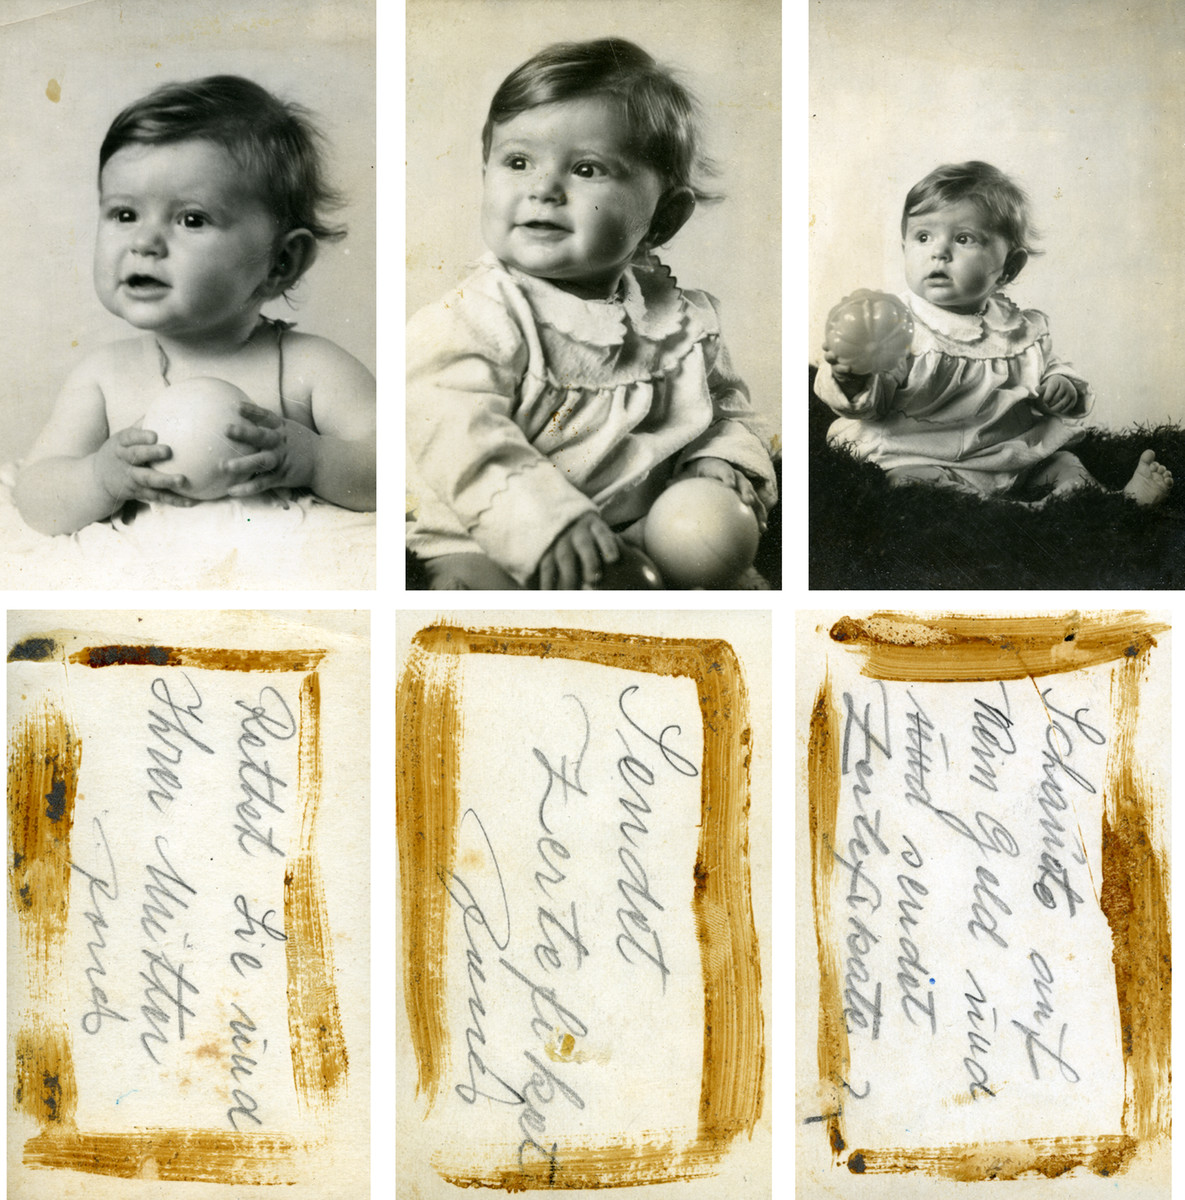 Studio portraits of baby Gerta Eckstein which were made to send to relatives in Palestine.  Underneath each picture is a note her father wrote begging someone to save her life by sending certificates.